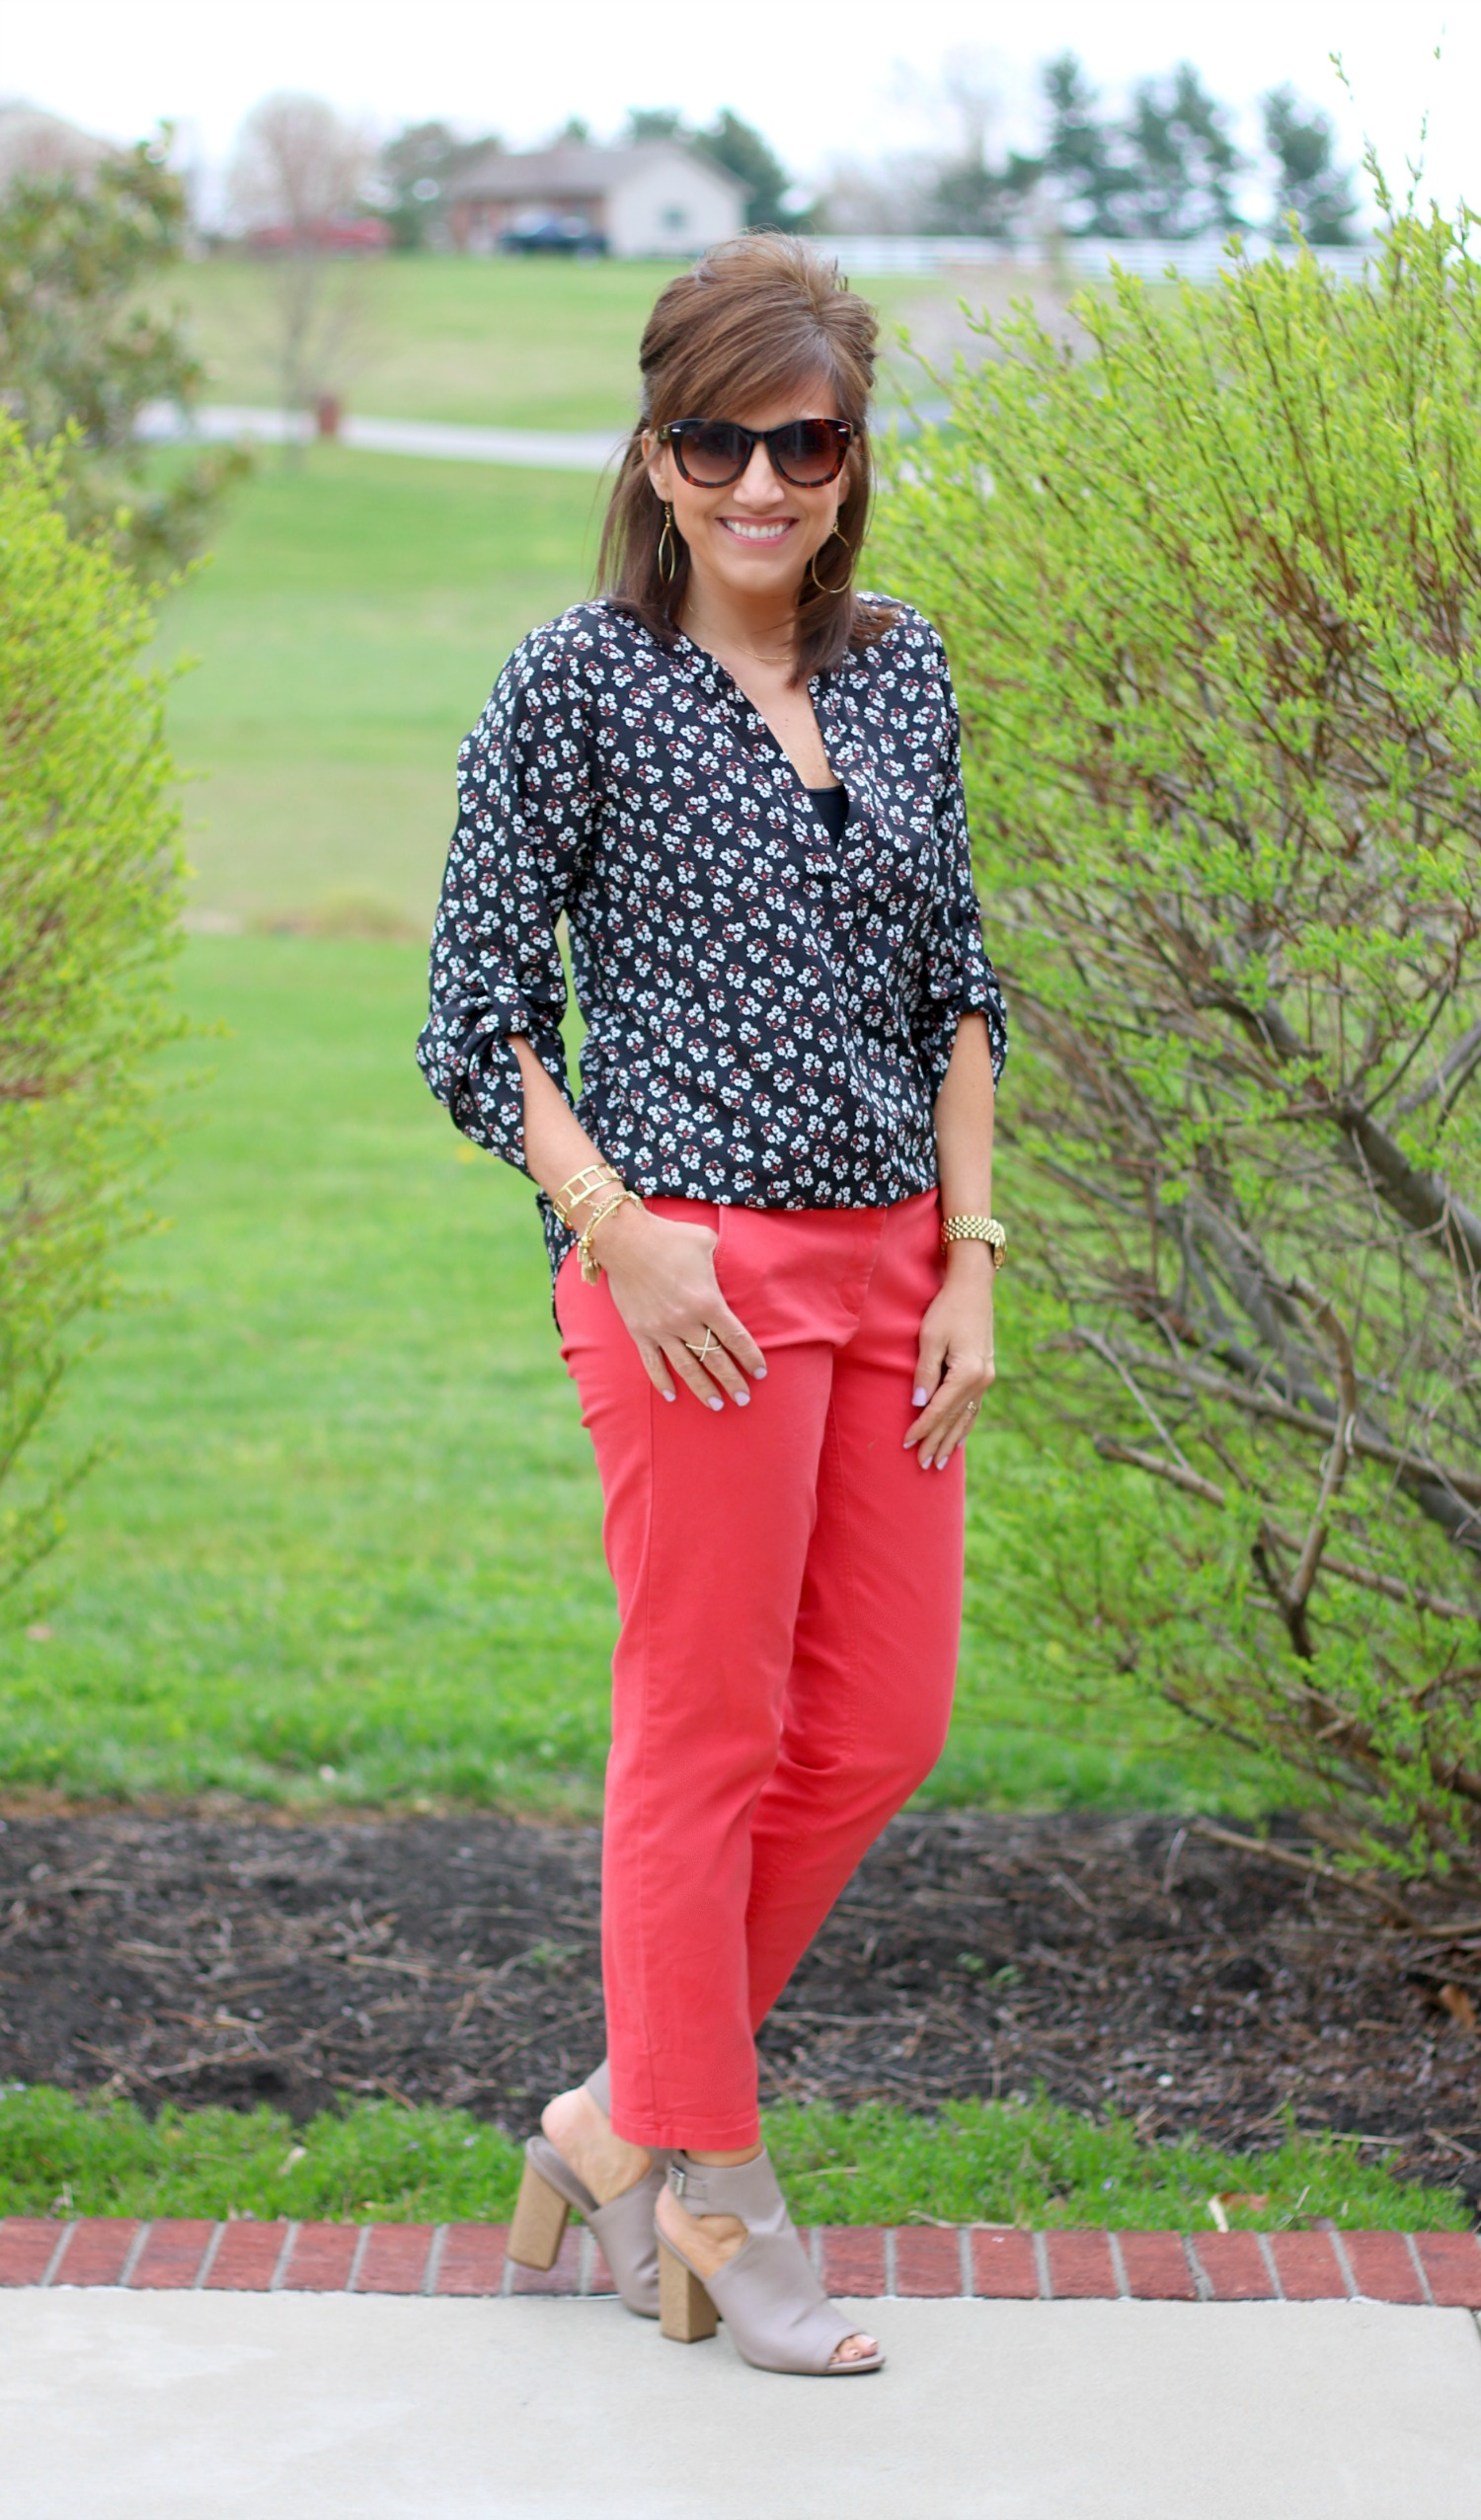 27 Days of Spring Fashion: Floral Top With Coral Pant